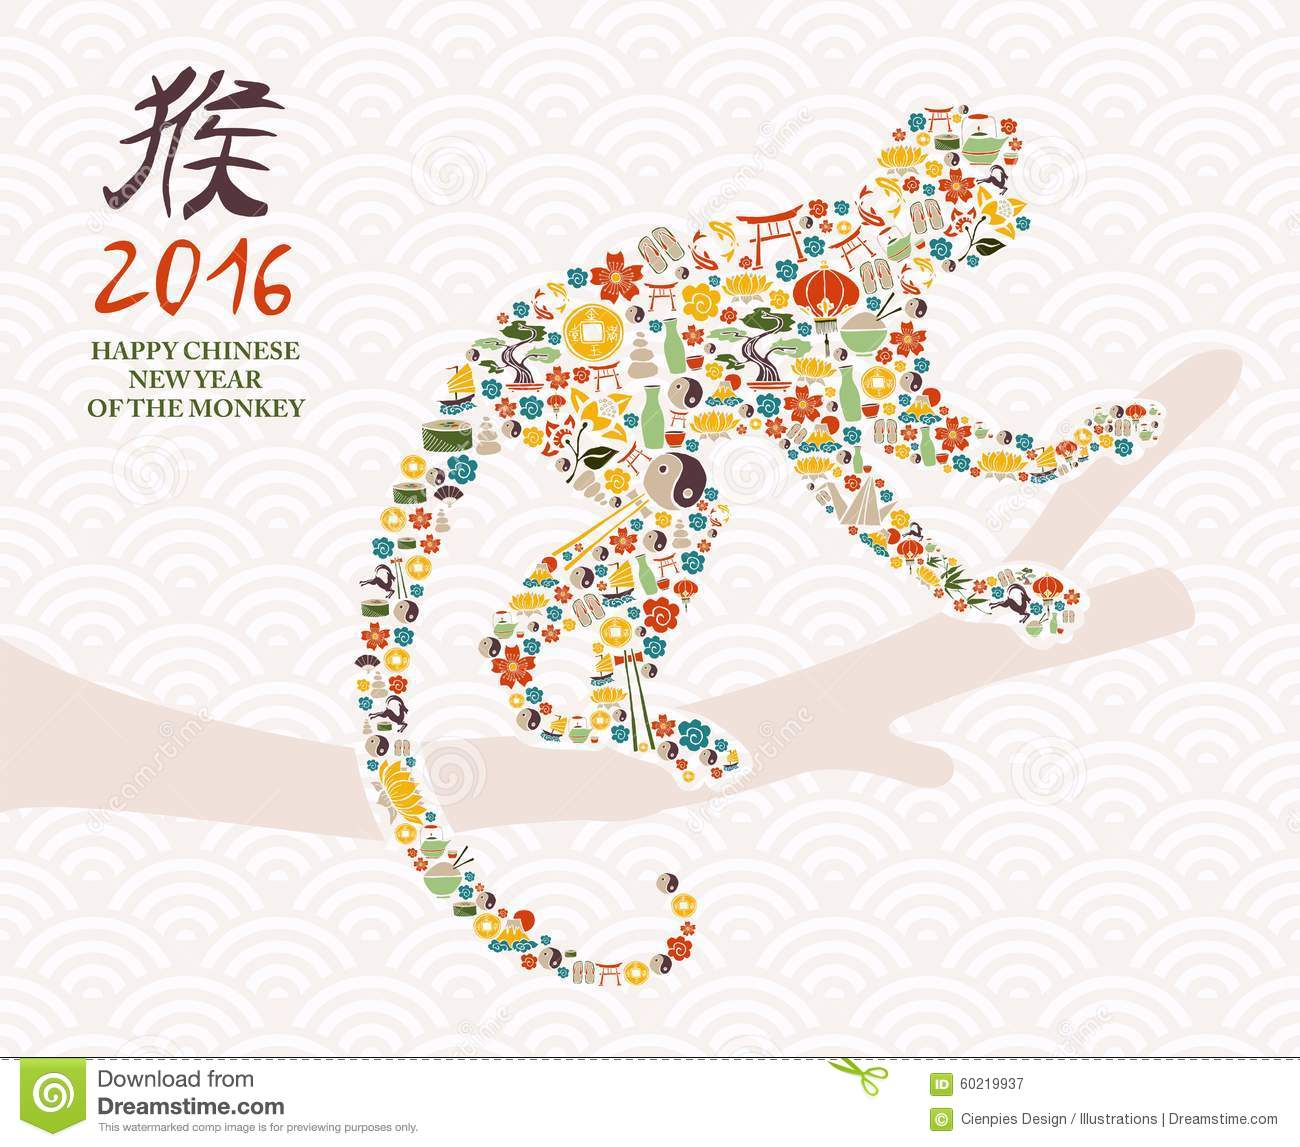 2016 happy chinese new year of monkey icons card